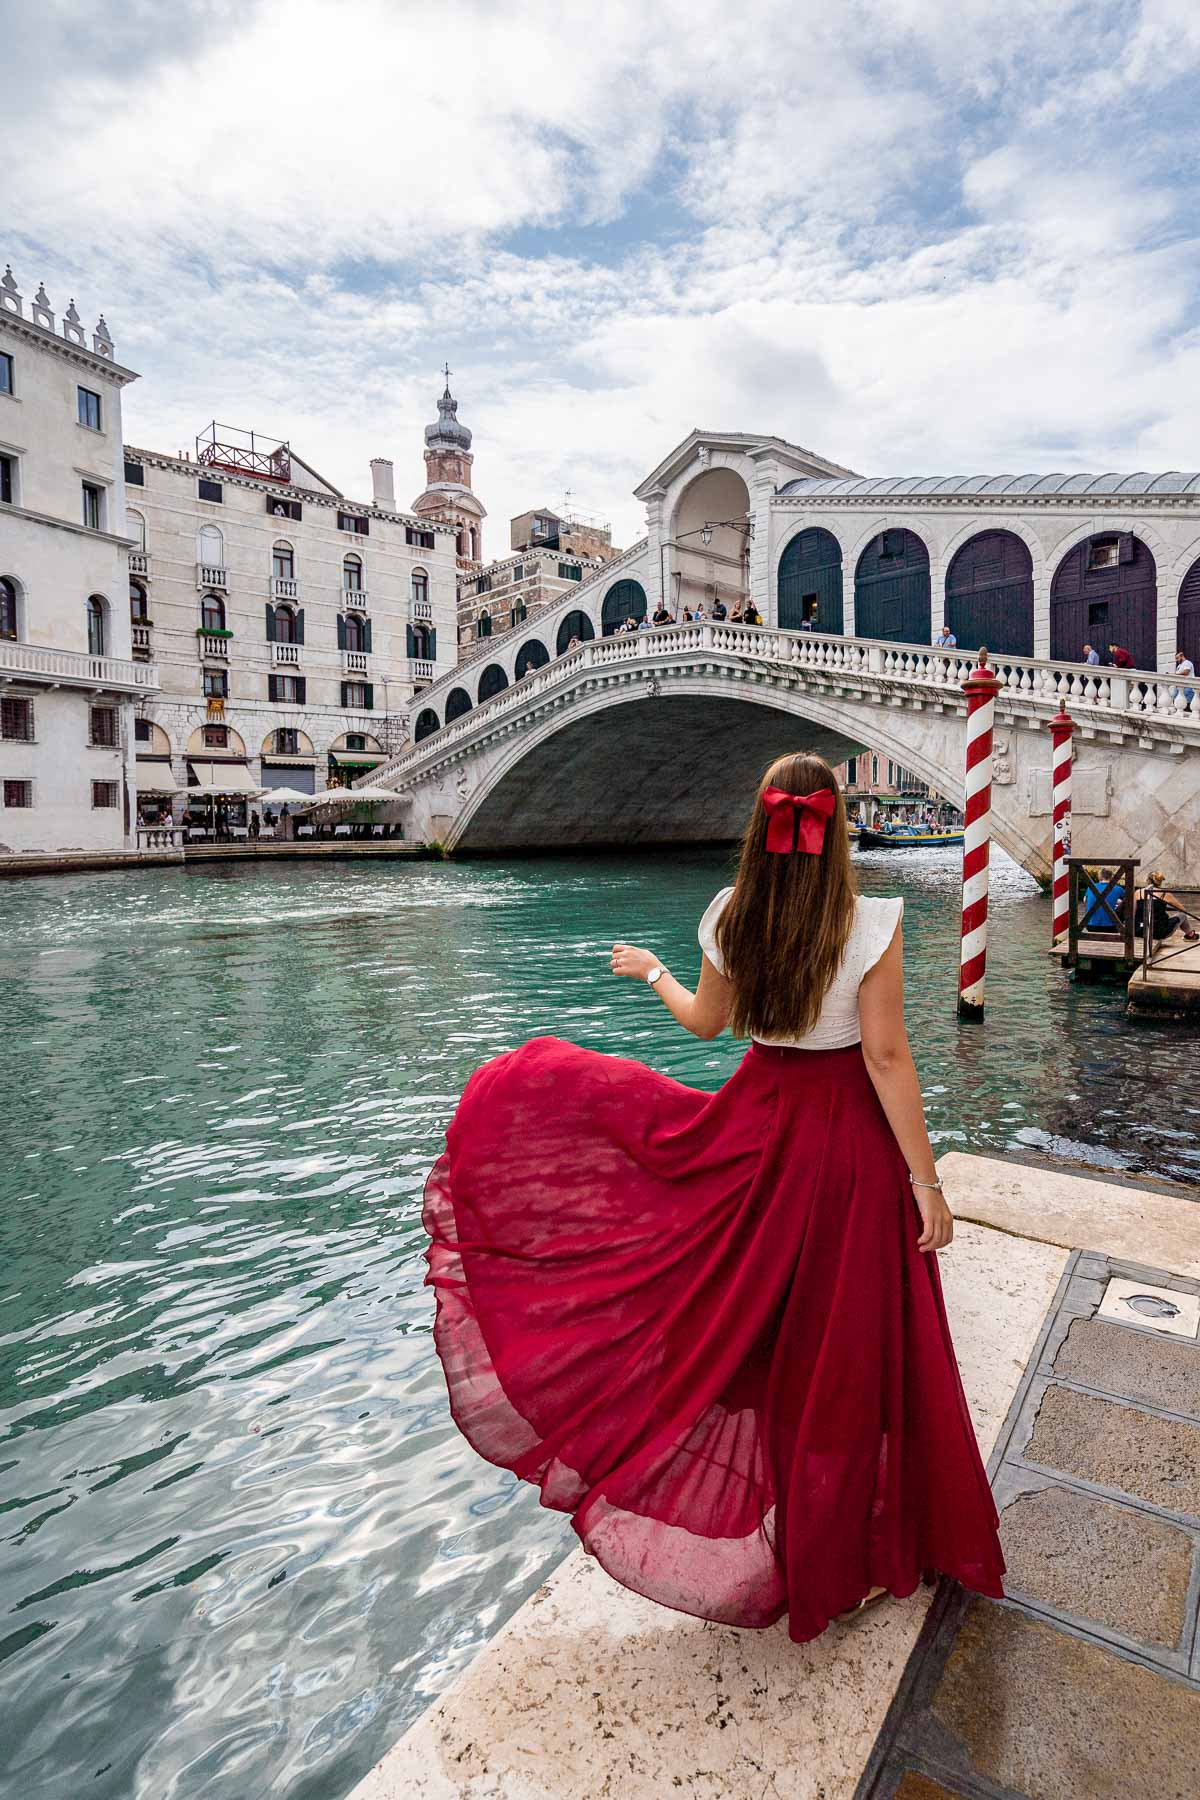 Girl in a red dress twirling in front of Rialto Bridge, which is one of the best Venice Instagram spots